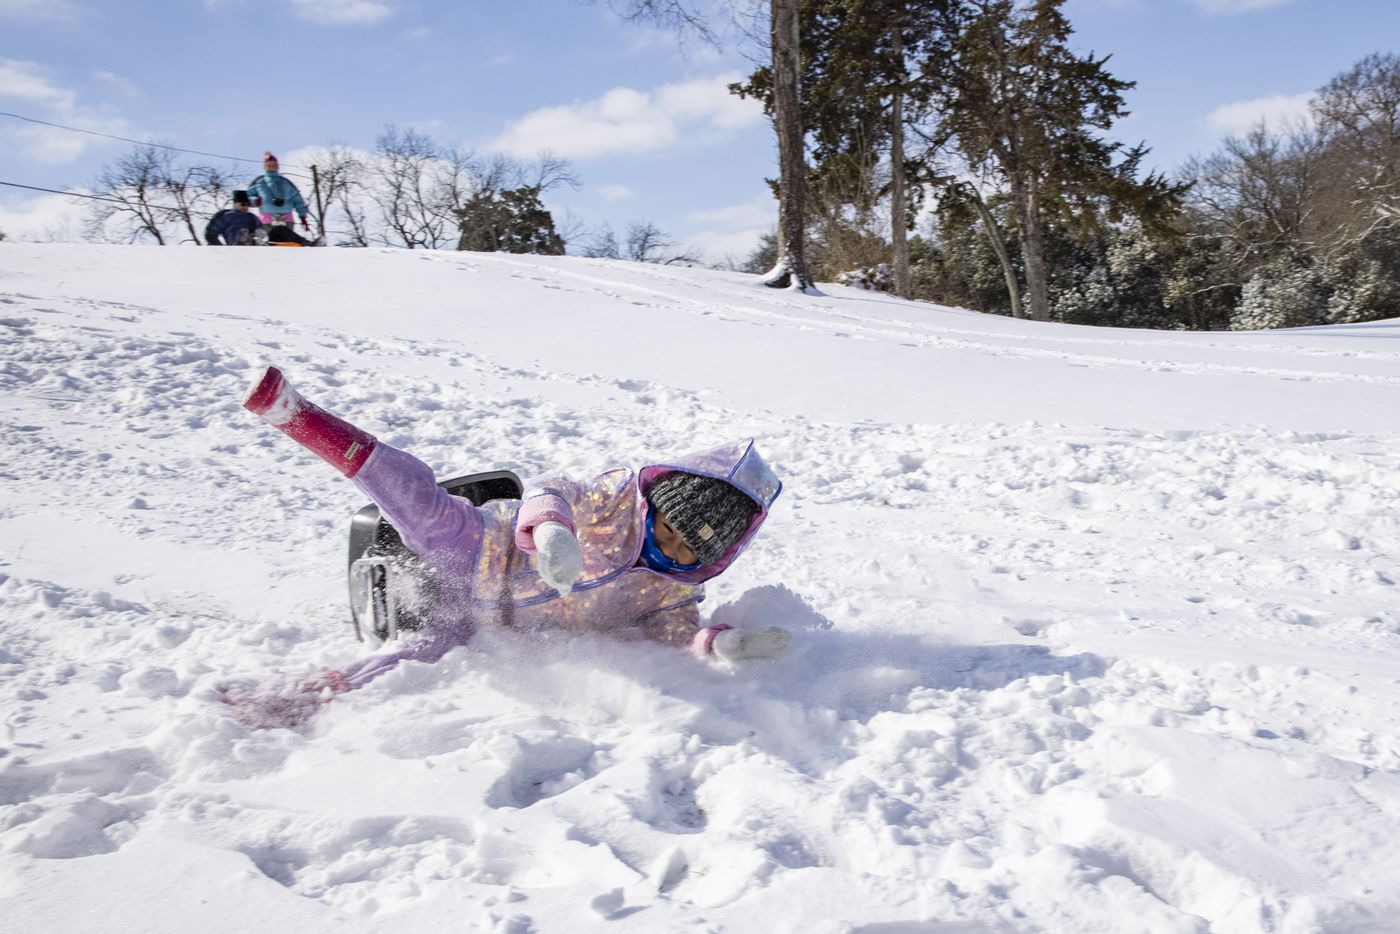 Mia Donjuan, 4, wipes off of her pan as she slides down a hill in the Dallas Elmwood neighborhood on Monday, Feb. 15, 2021. (Juan Figueroa/ The Dallas Morning News)